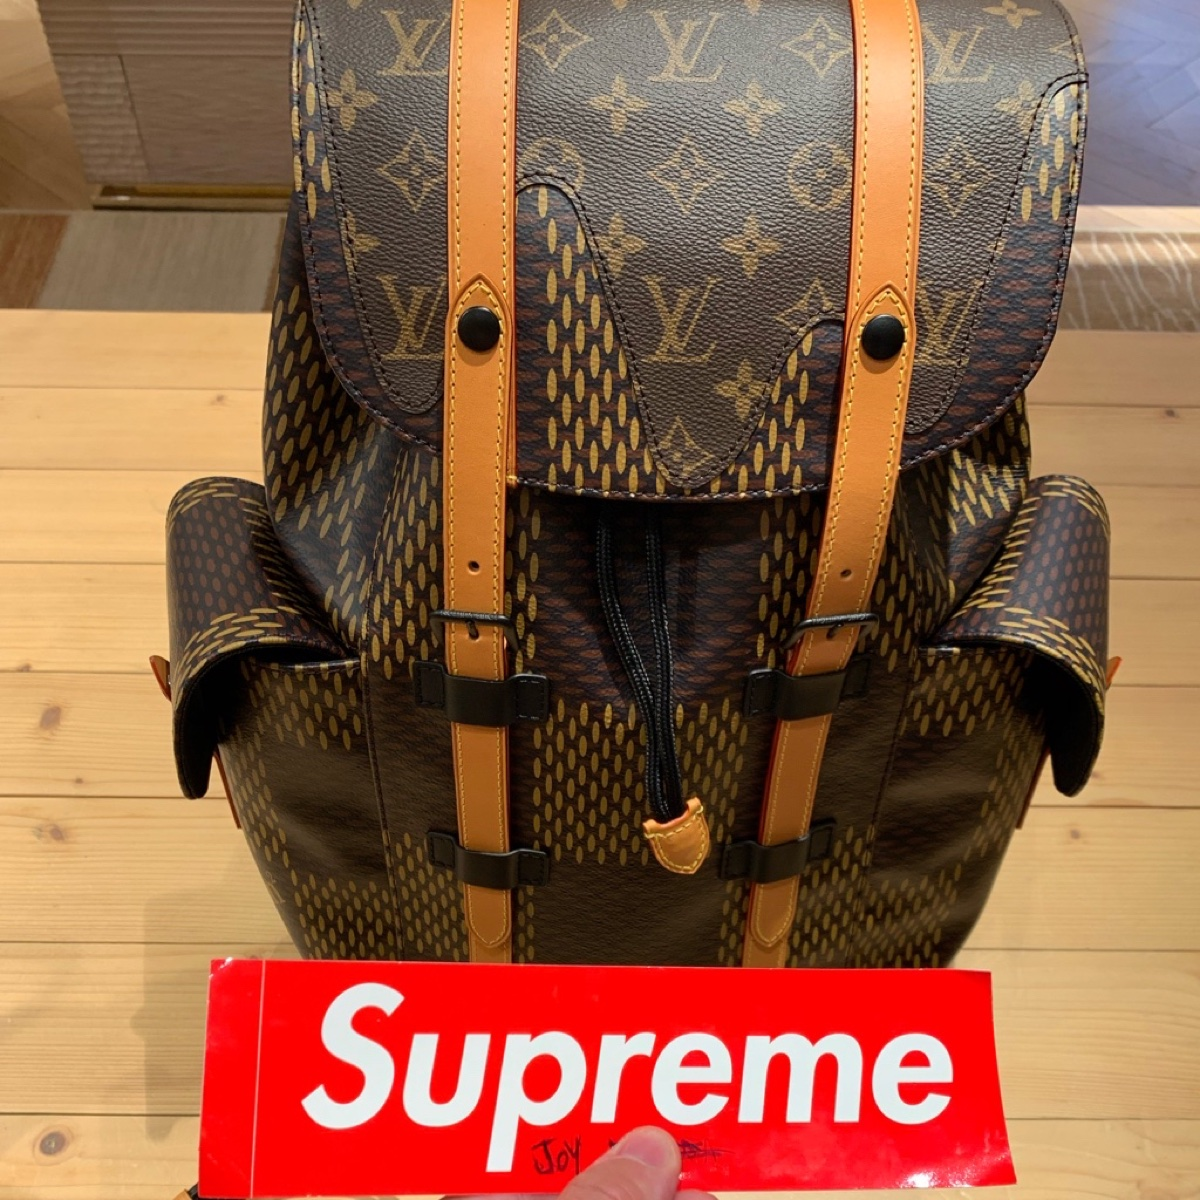 Louis Vuitton x Nigo backpack Christopher